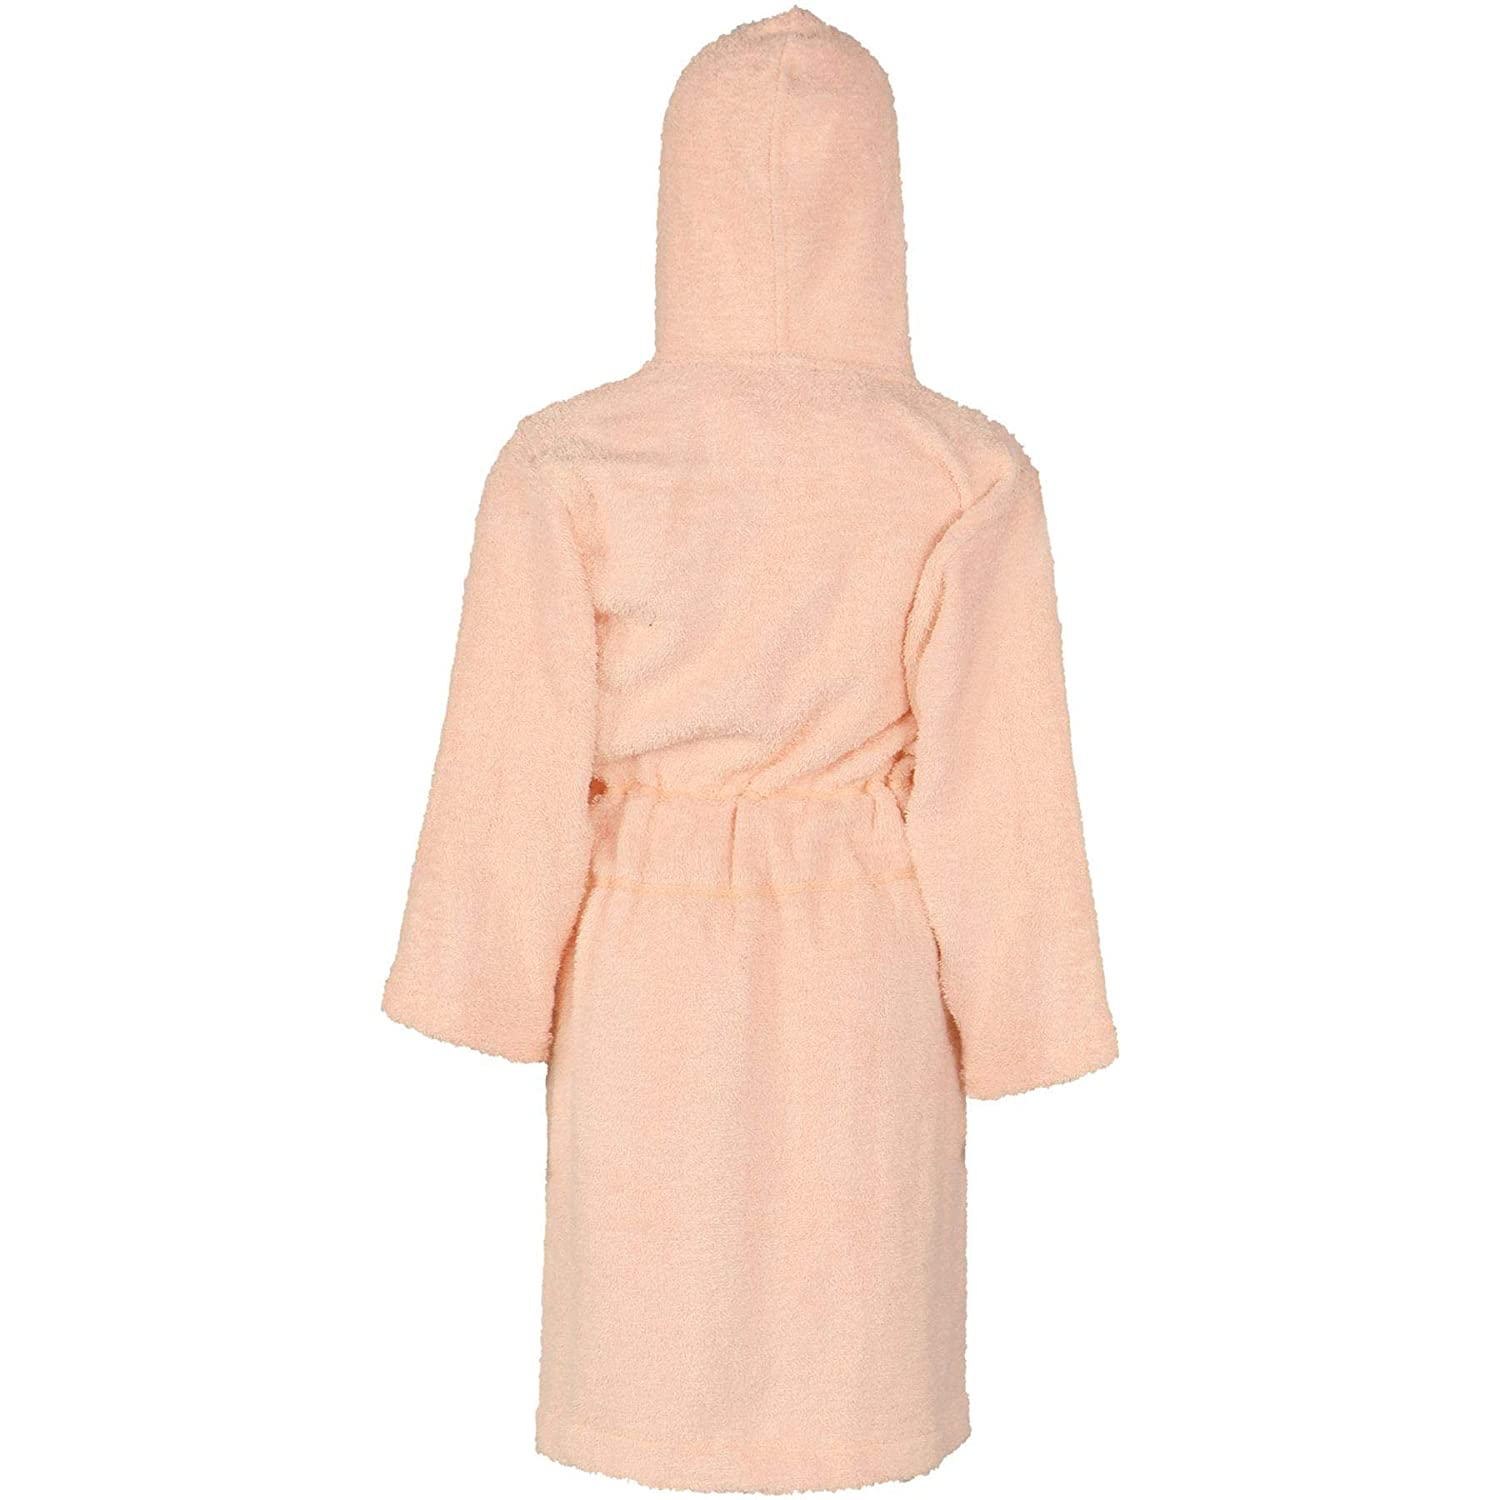 A2Z 4 Kids® Kids Girls Boys Towel Bathrobe 100% Cotton Hooded Terry  Towelling Luxury Robes Dressing Gown Loungewear Age 5 6 7 8 9 10 11 12 13  Years  ... 62294ca4e